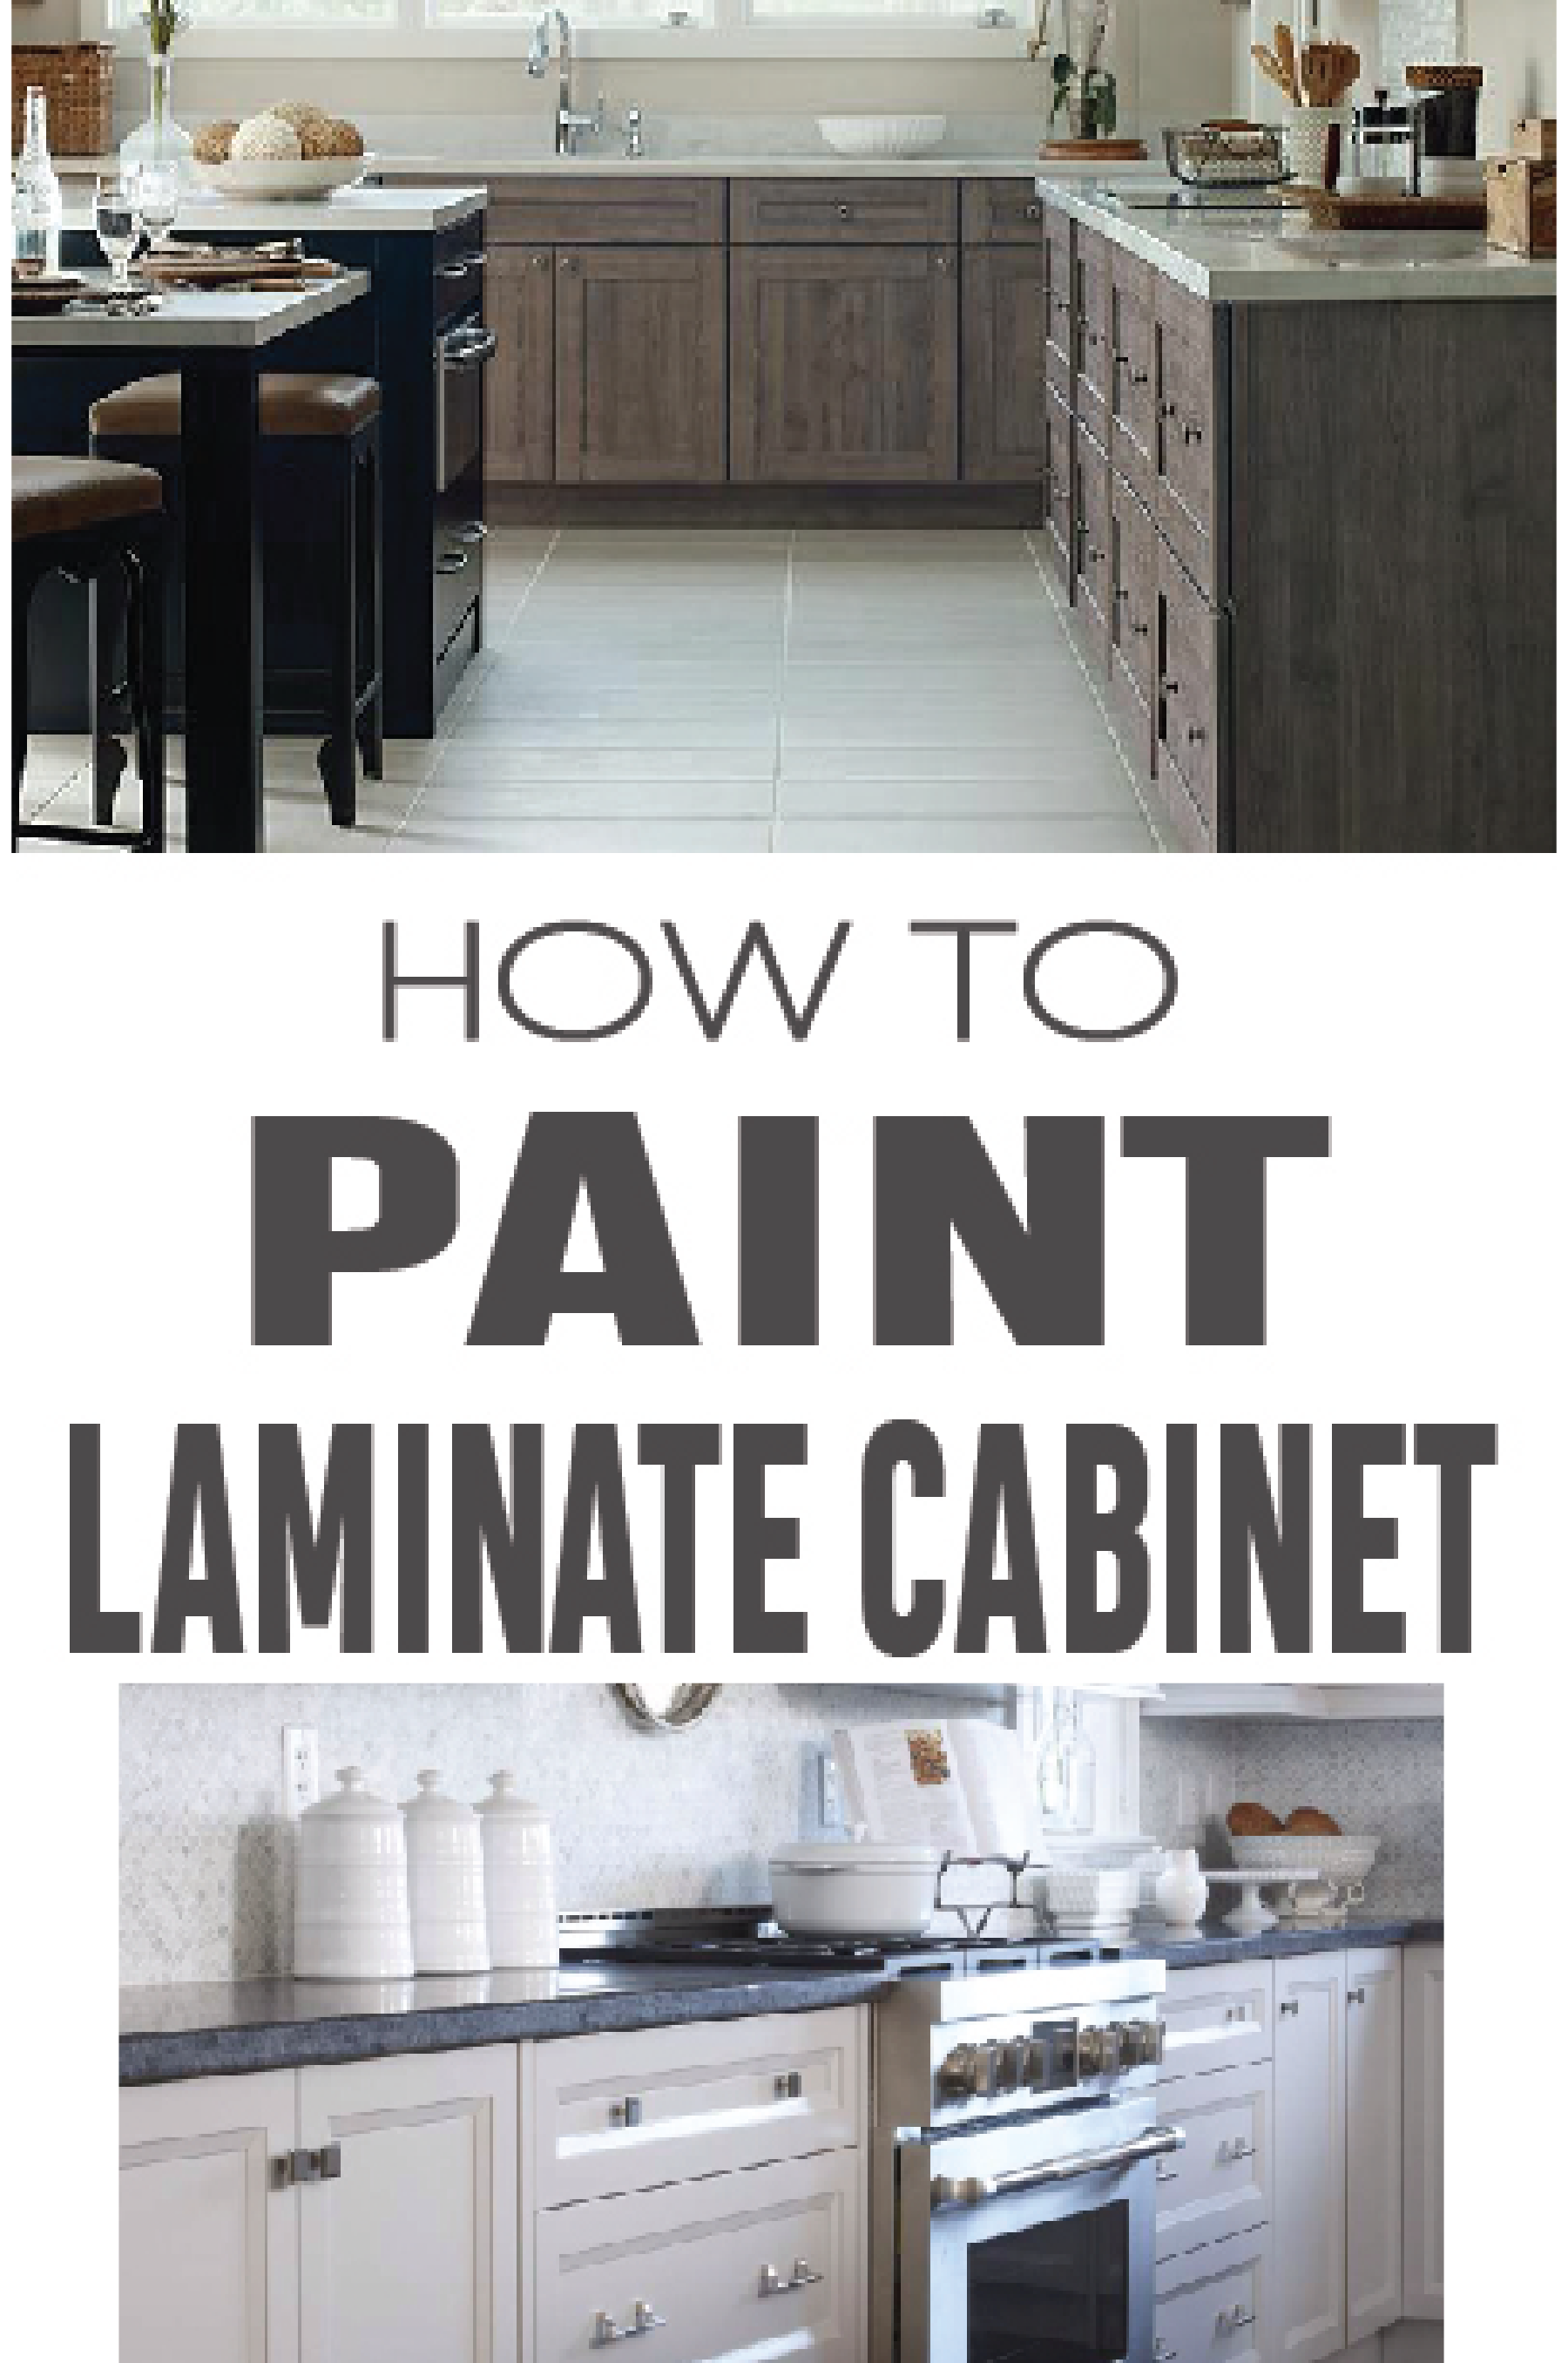 How to Paint Laminate Cabinets | DIY Home Decor Ideas ...